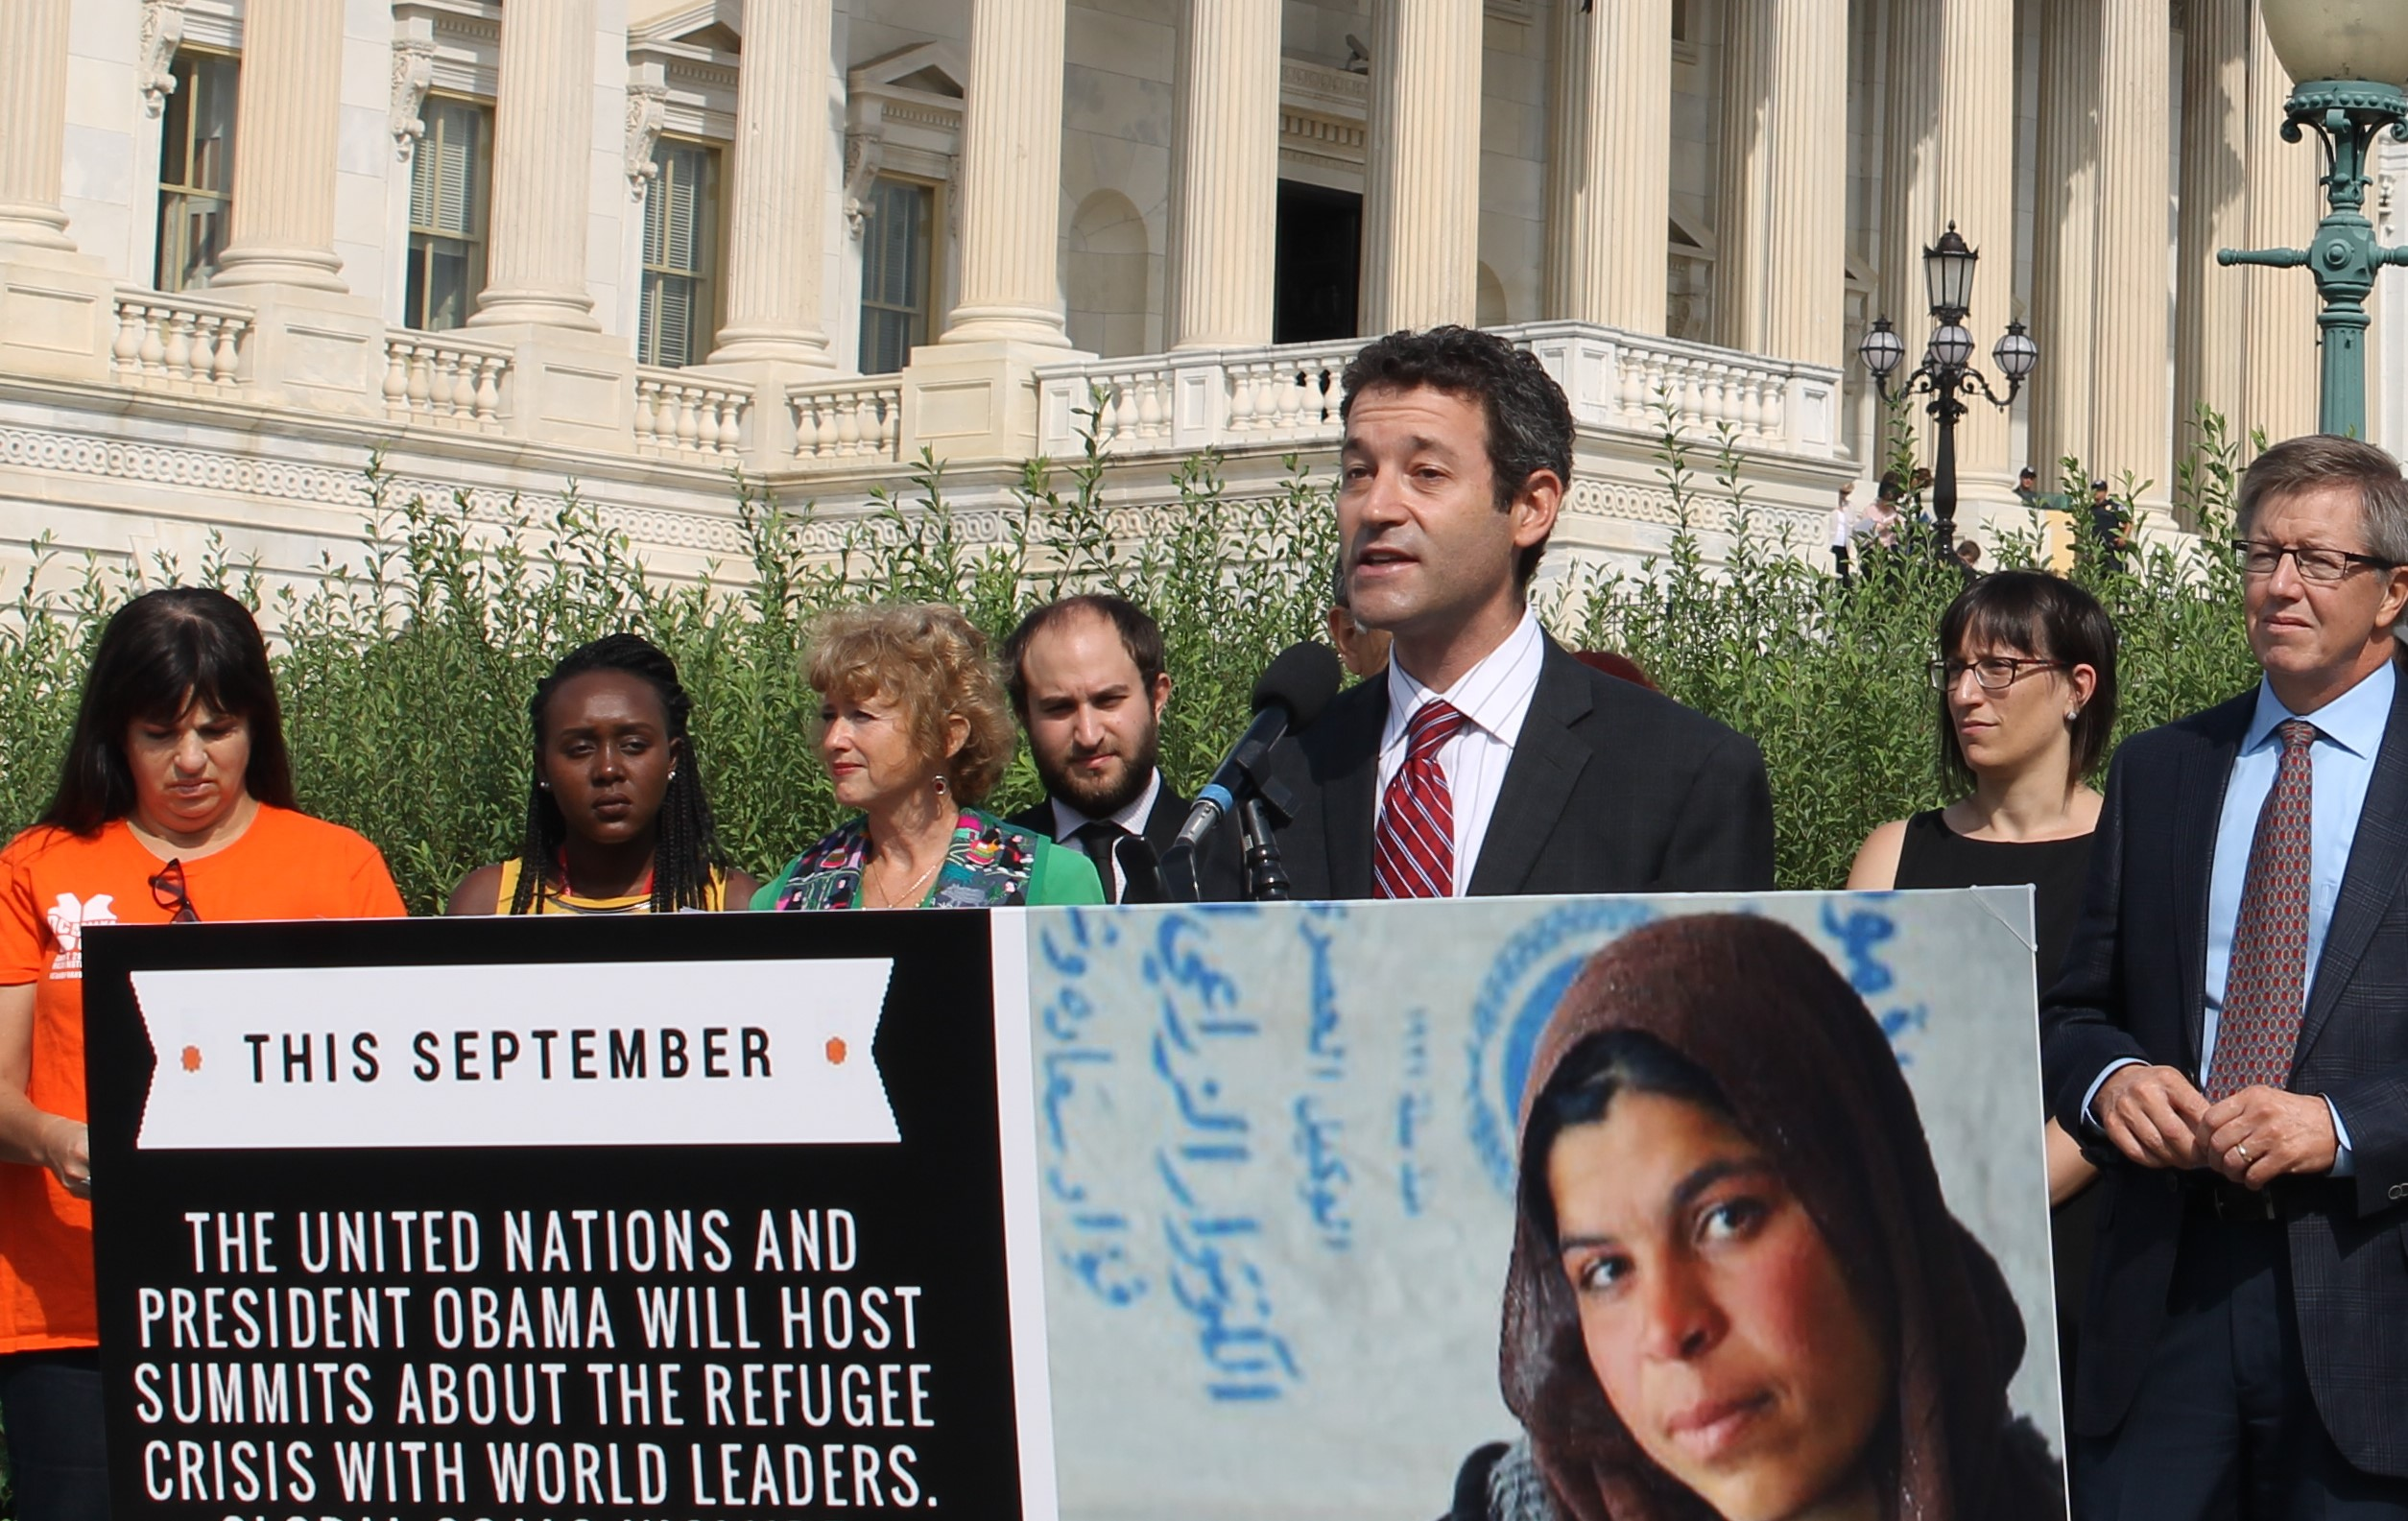 Rabbi Saxe speaking at Refugees Welcome press conference